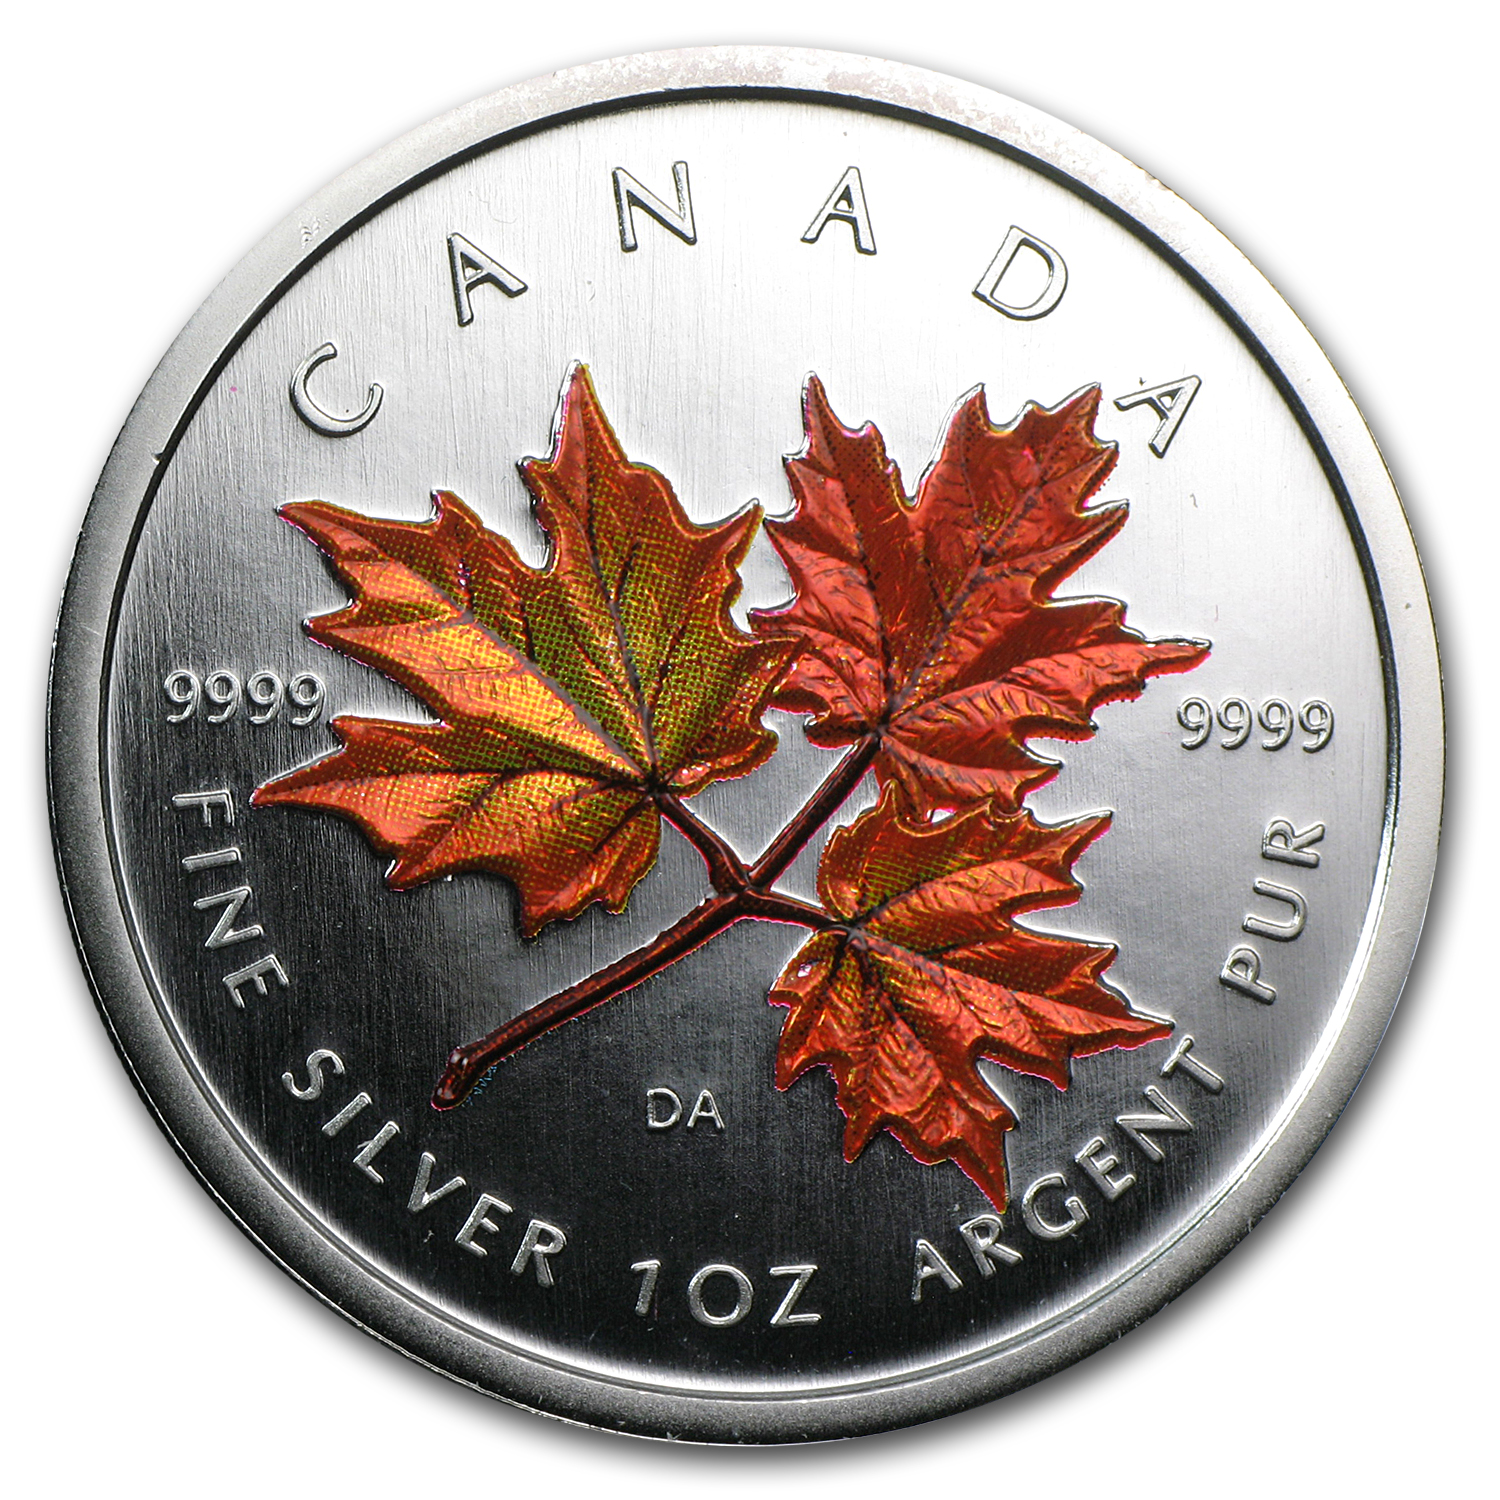 2001 1 oz Silver Canadian Maple Leaf (Autumn)